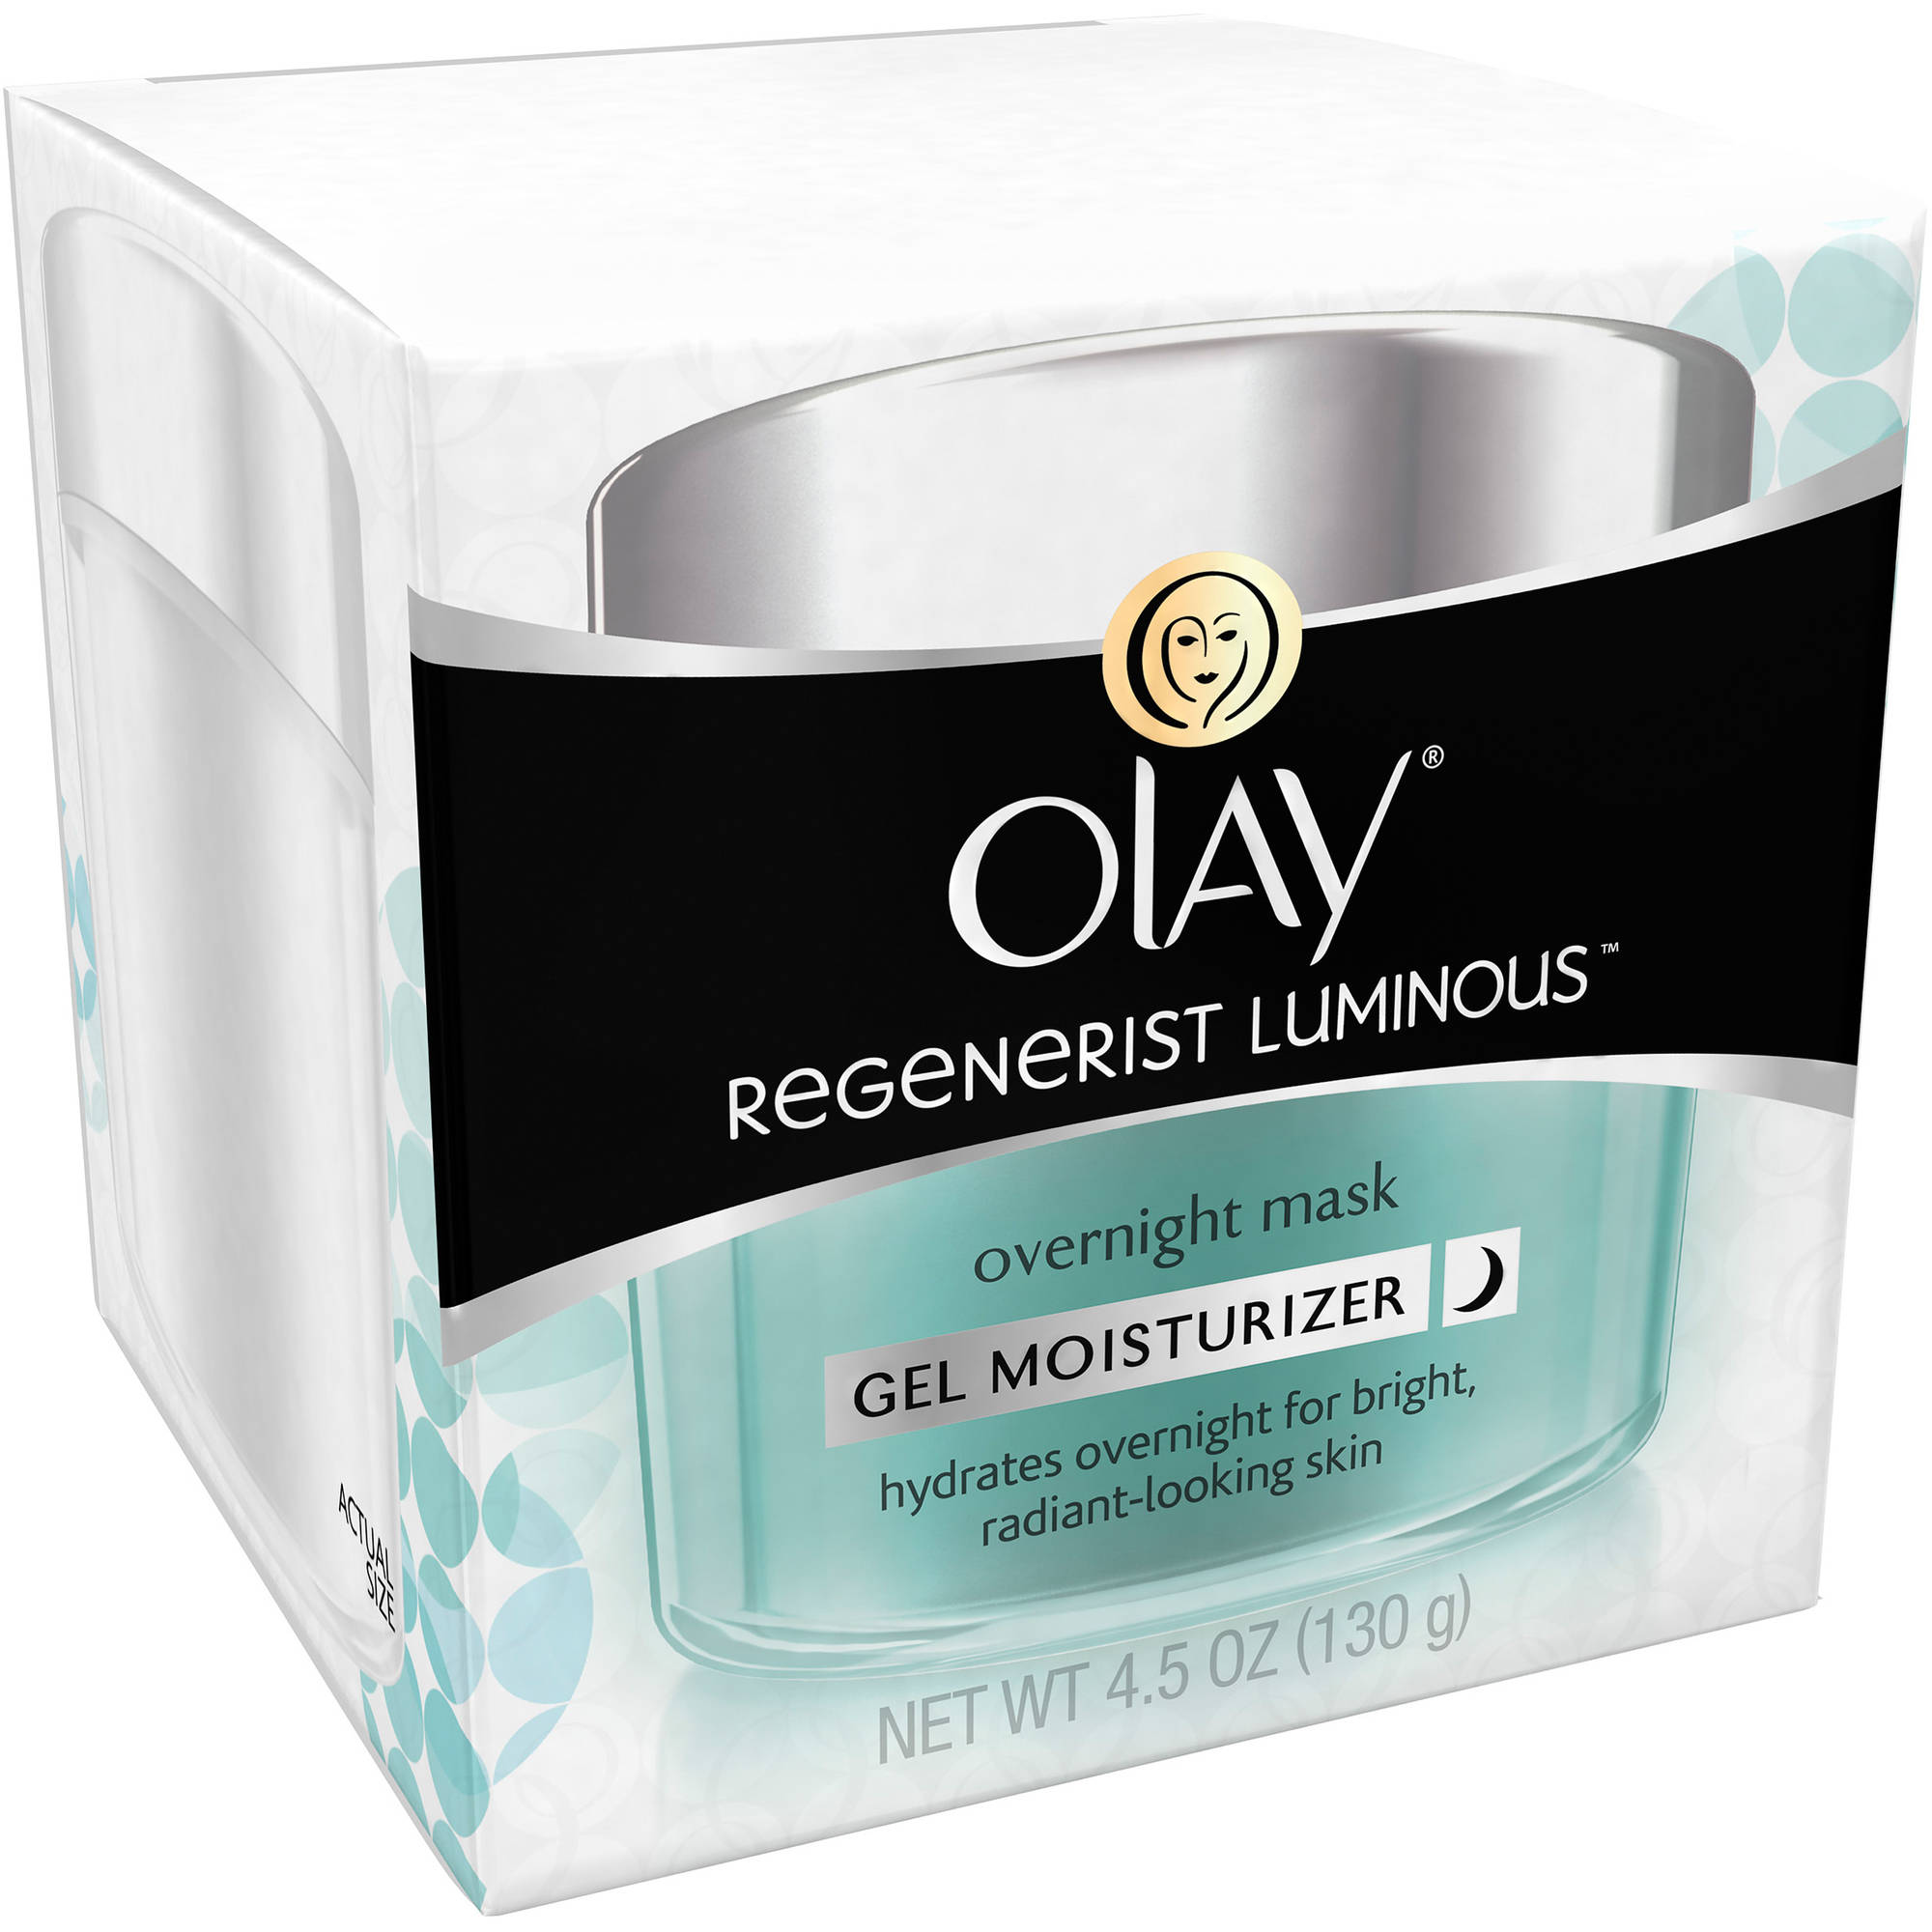 Olay Regenerist Luminous Overnight Mask Gel Moisturizer, 4.5 fl oz